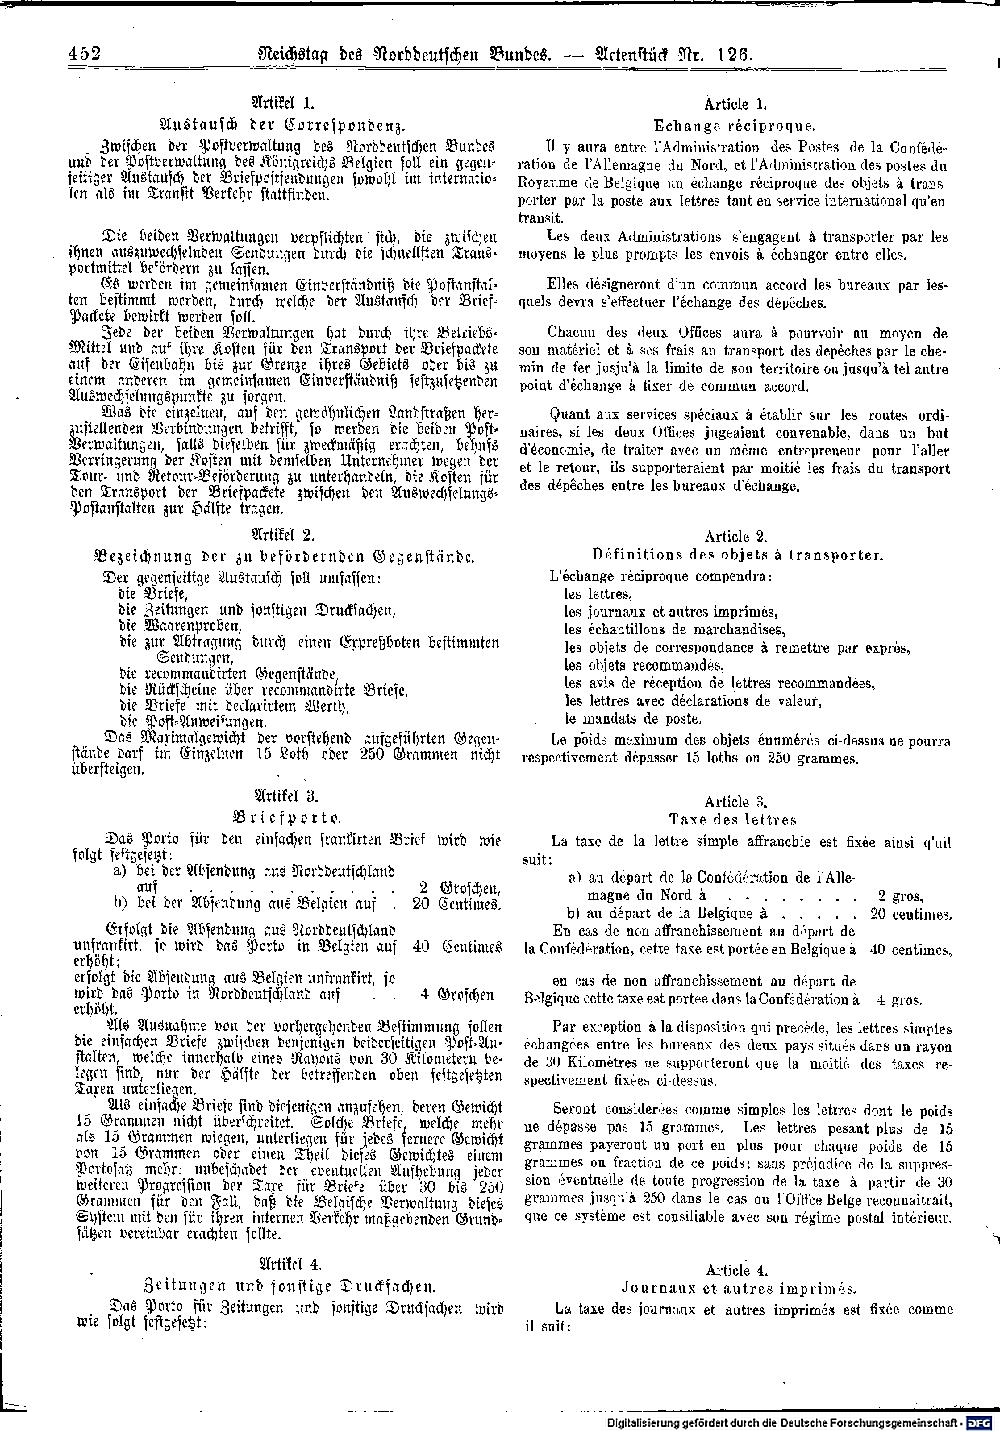 Scan of page 452